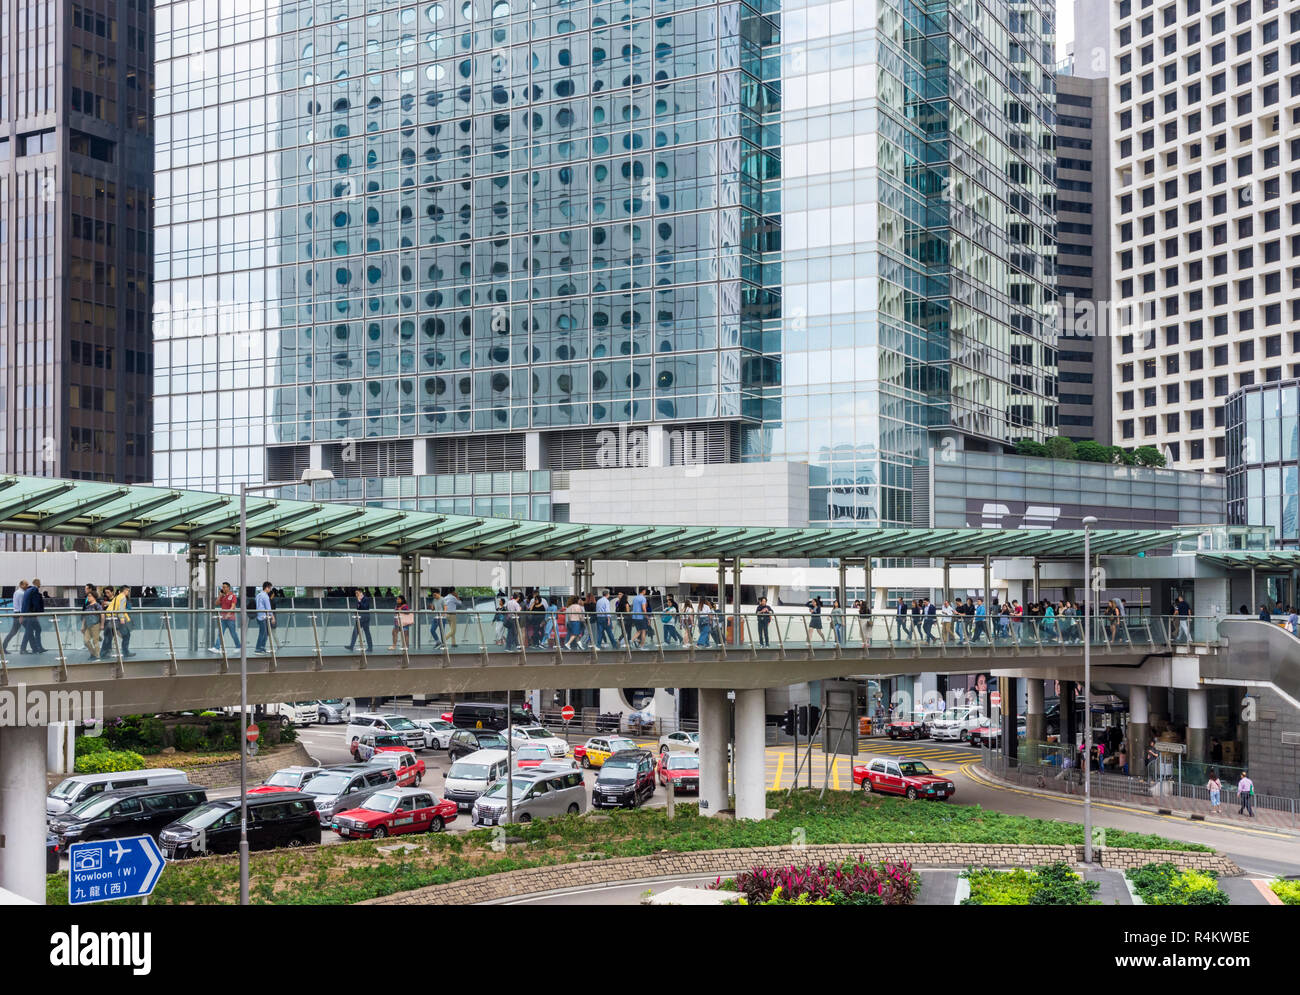 Elevated walkways connecting buildings take pedestrians to safety above traffic in Hong Kong's Central area, Hong Kong Island, Hong Kong, China - Stock Image